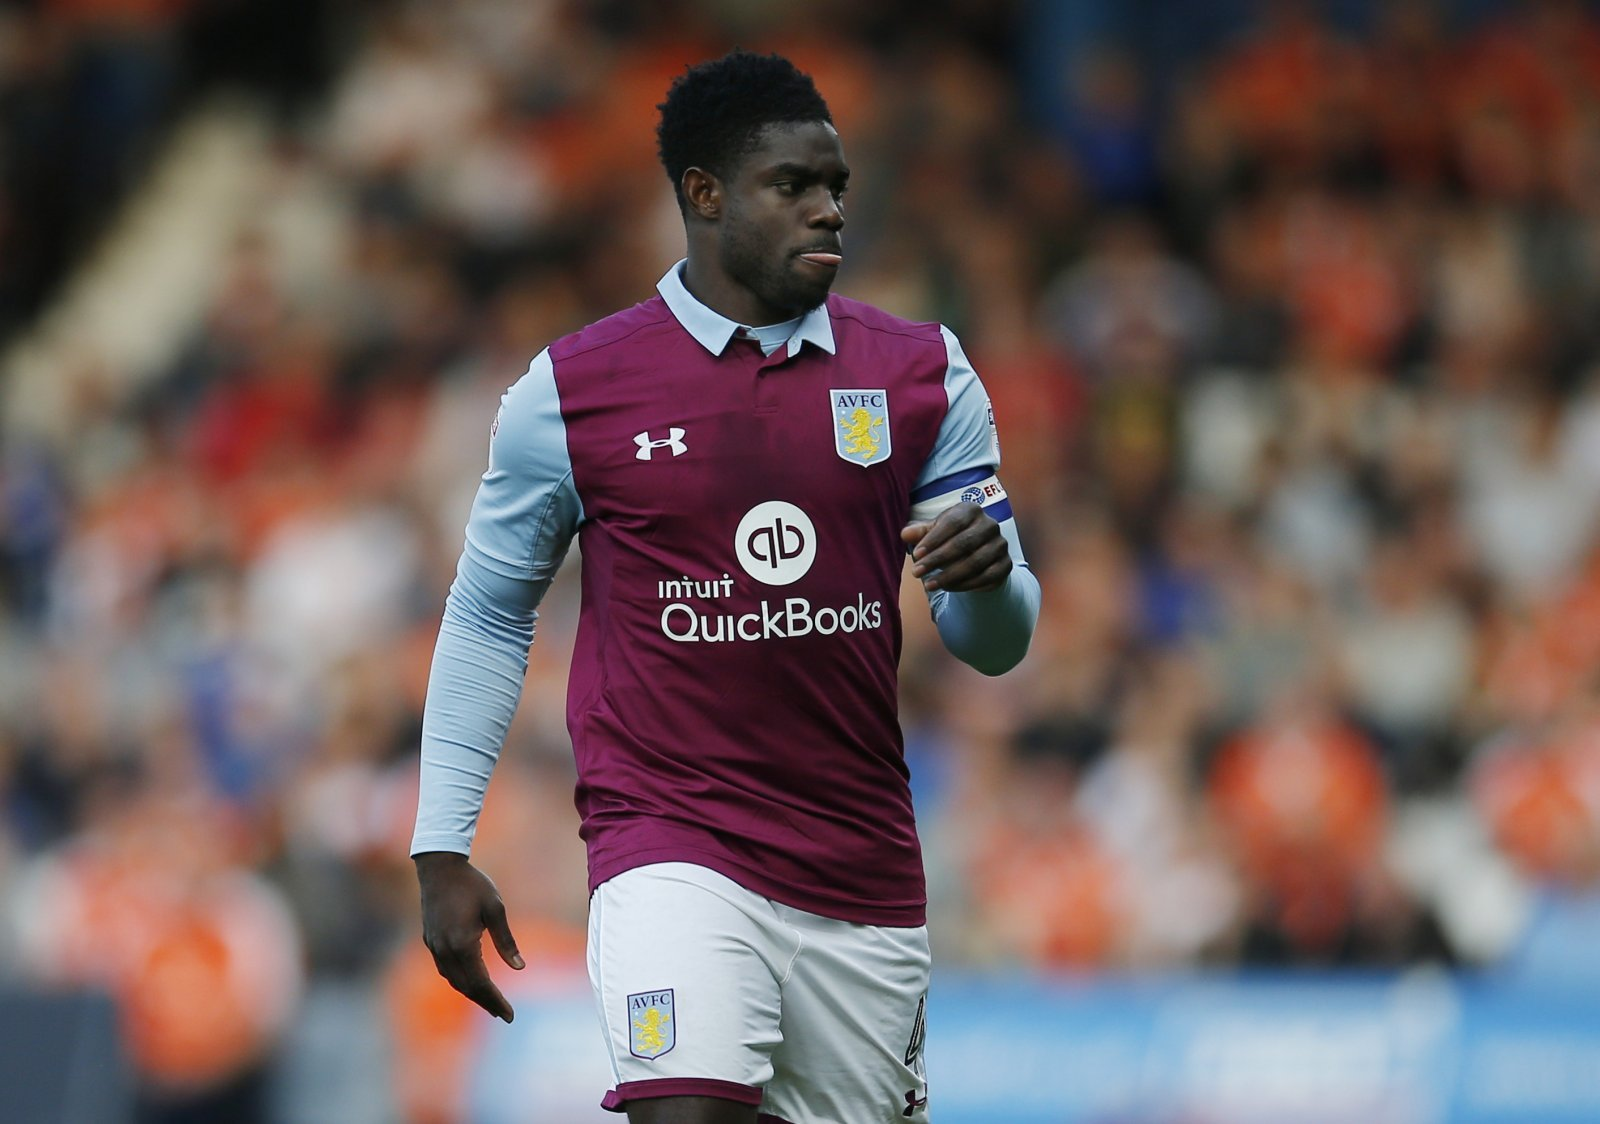 Aston Villa fans are spot on: Serious questions need asking of Micah Richards